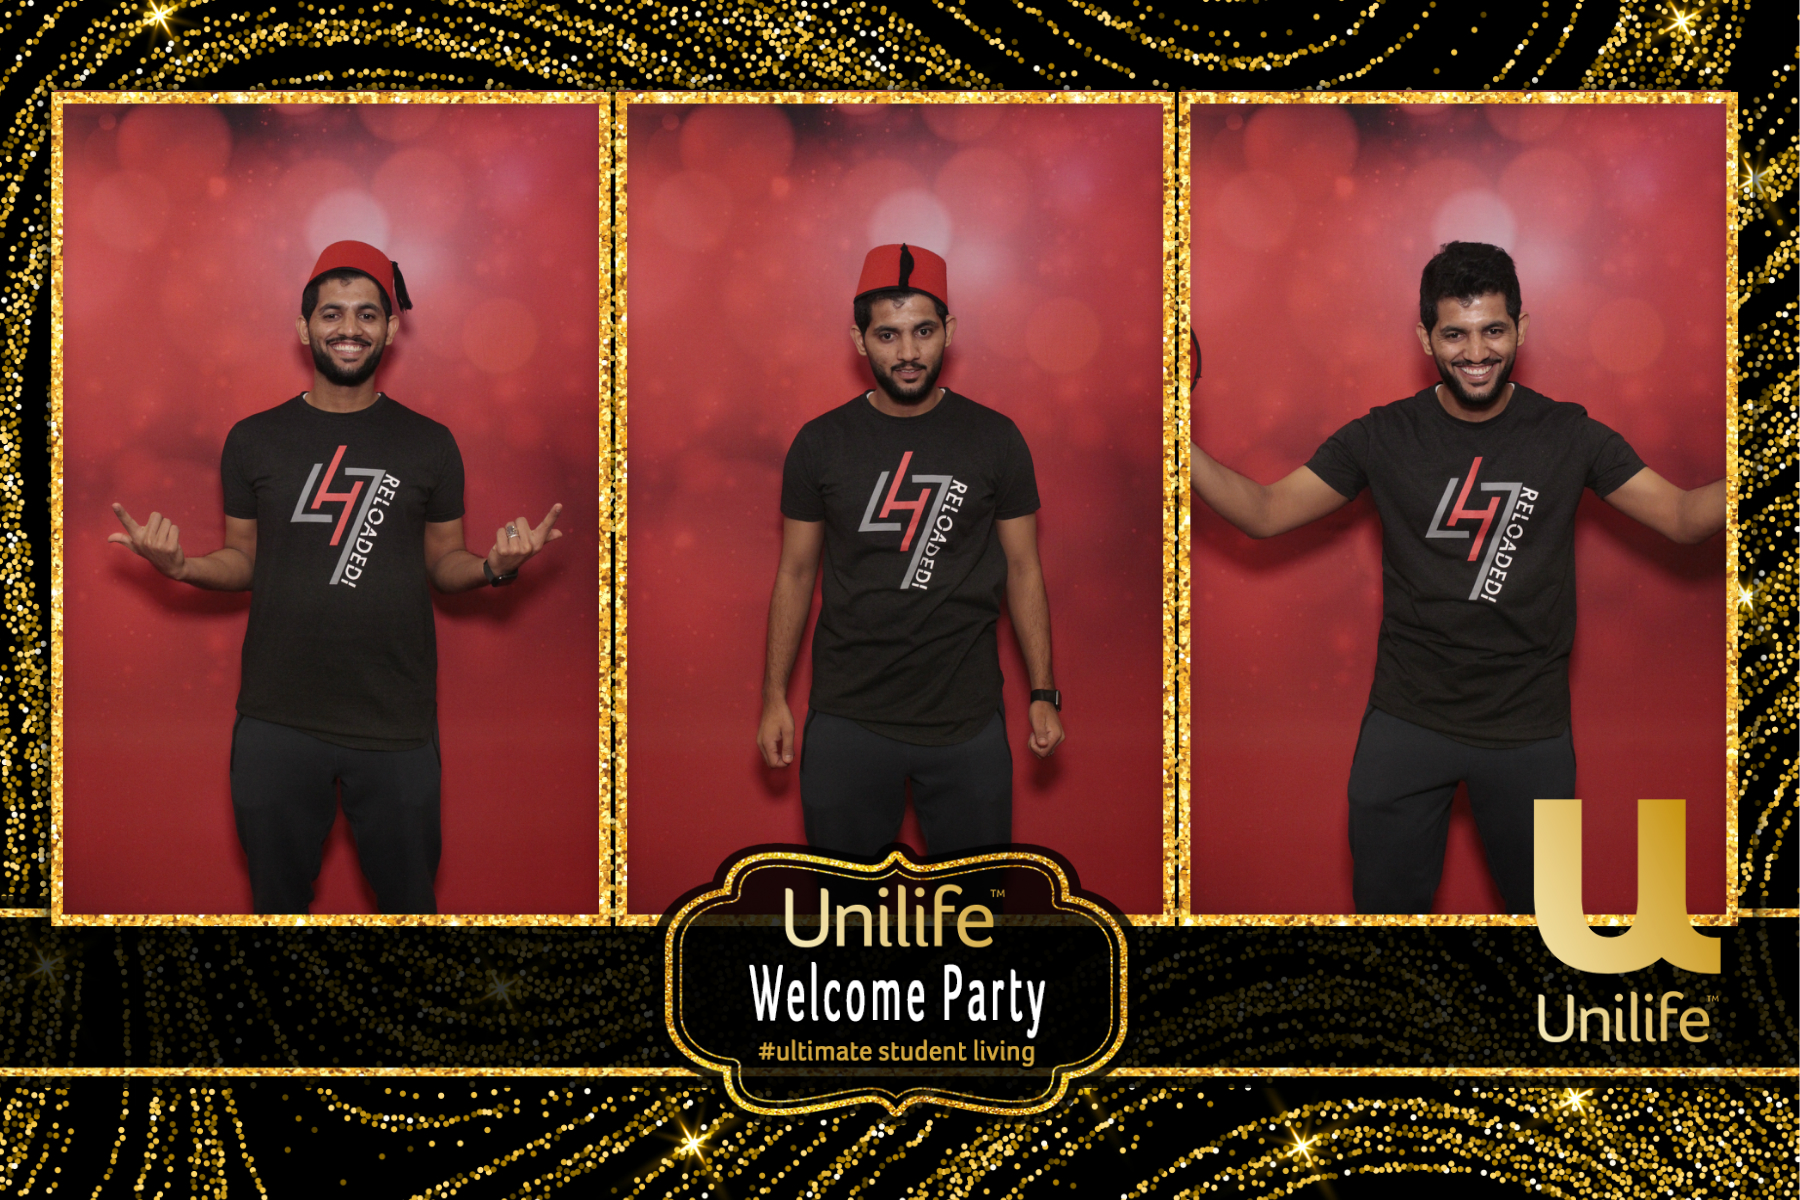 Unilife Welcome Party | View more photos from the event at gallery.myphotoboothexperience.co.uk/u/MyPhotoBoothExperienceLtd/Unilife-Welcome-Party